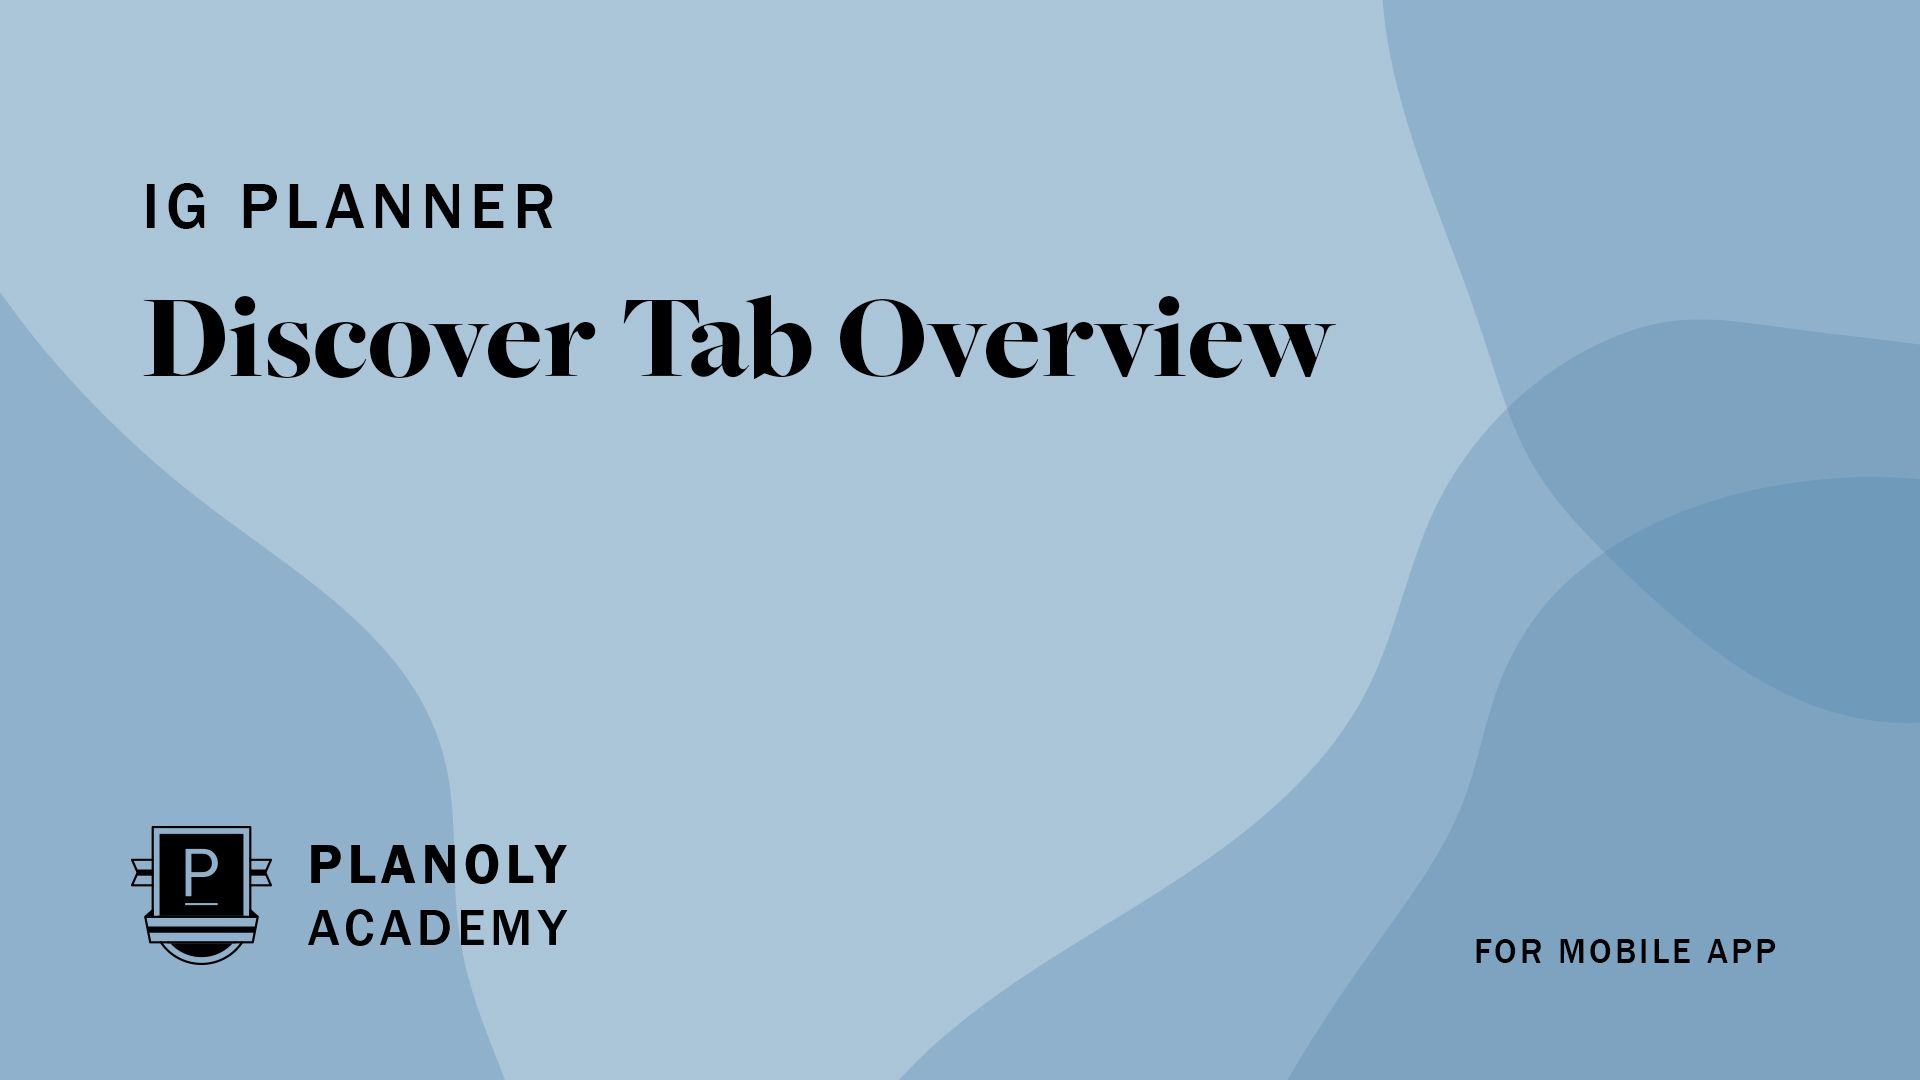 Discover Tab Overview